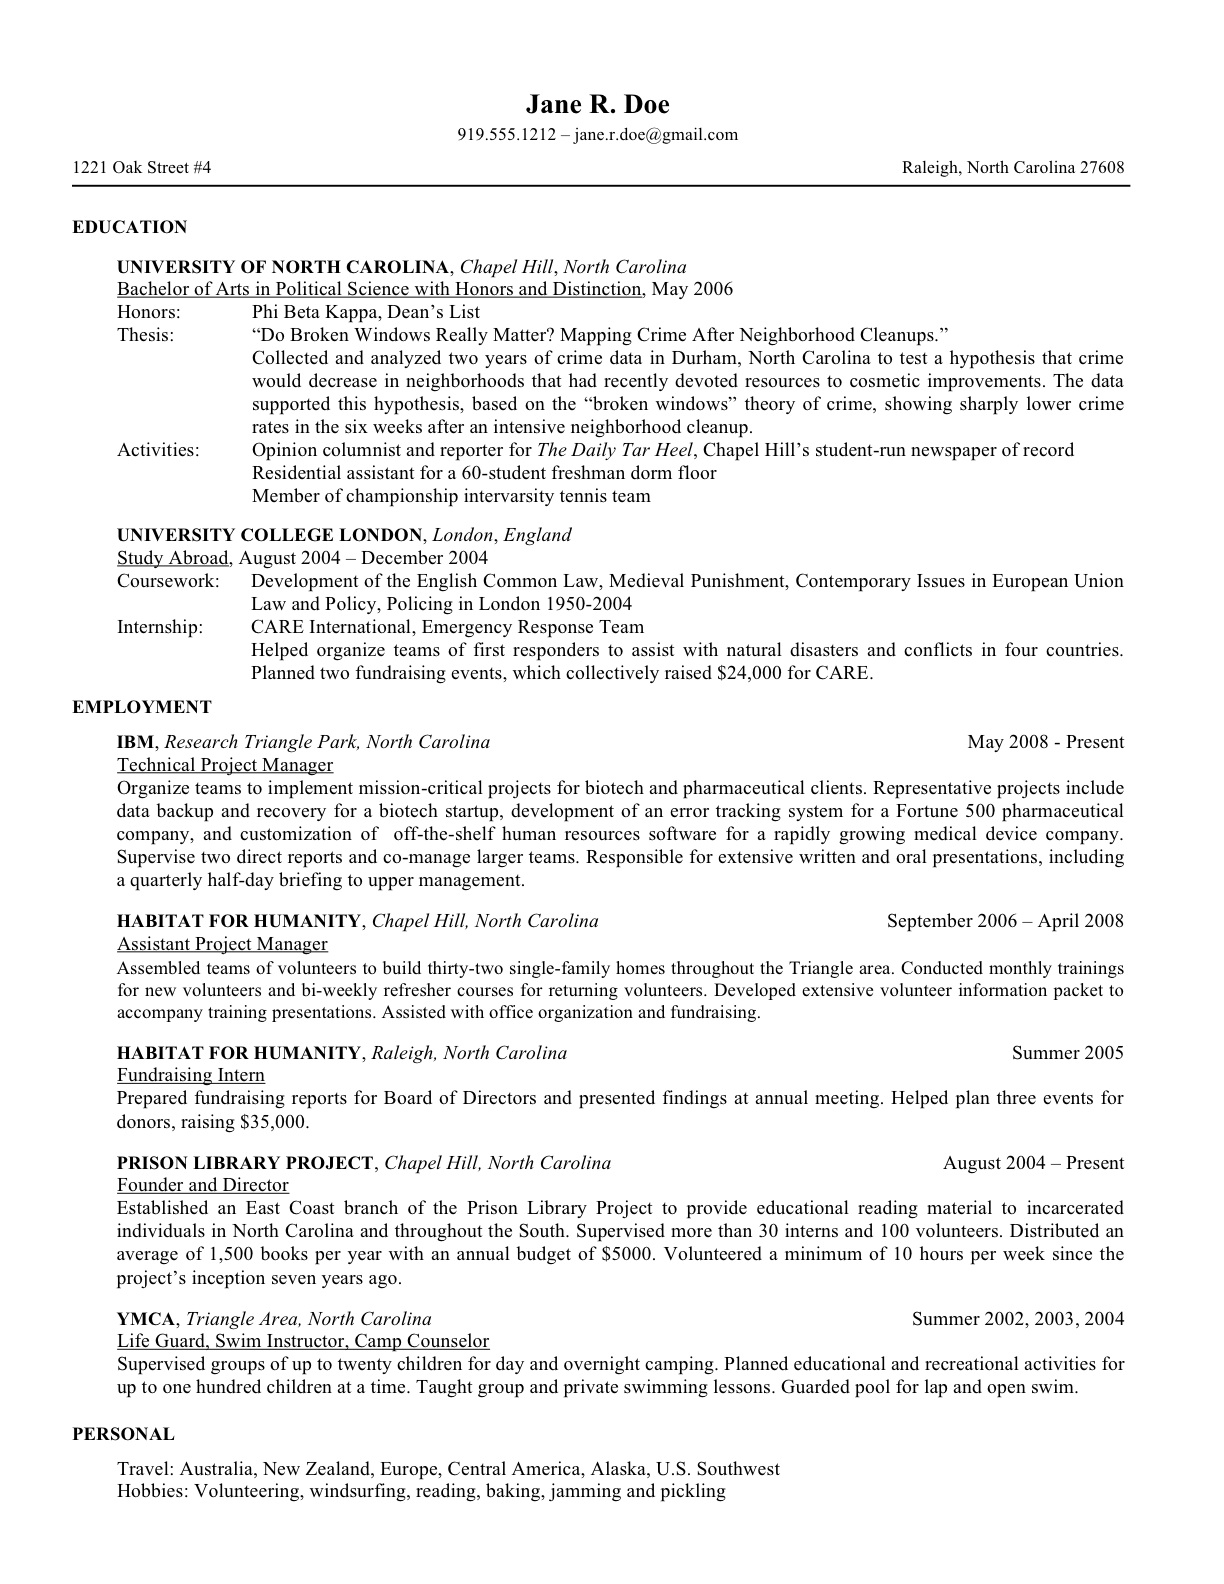 resume for college application outline resume objective social work